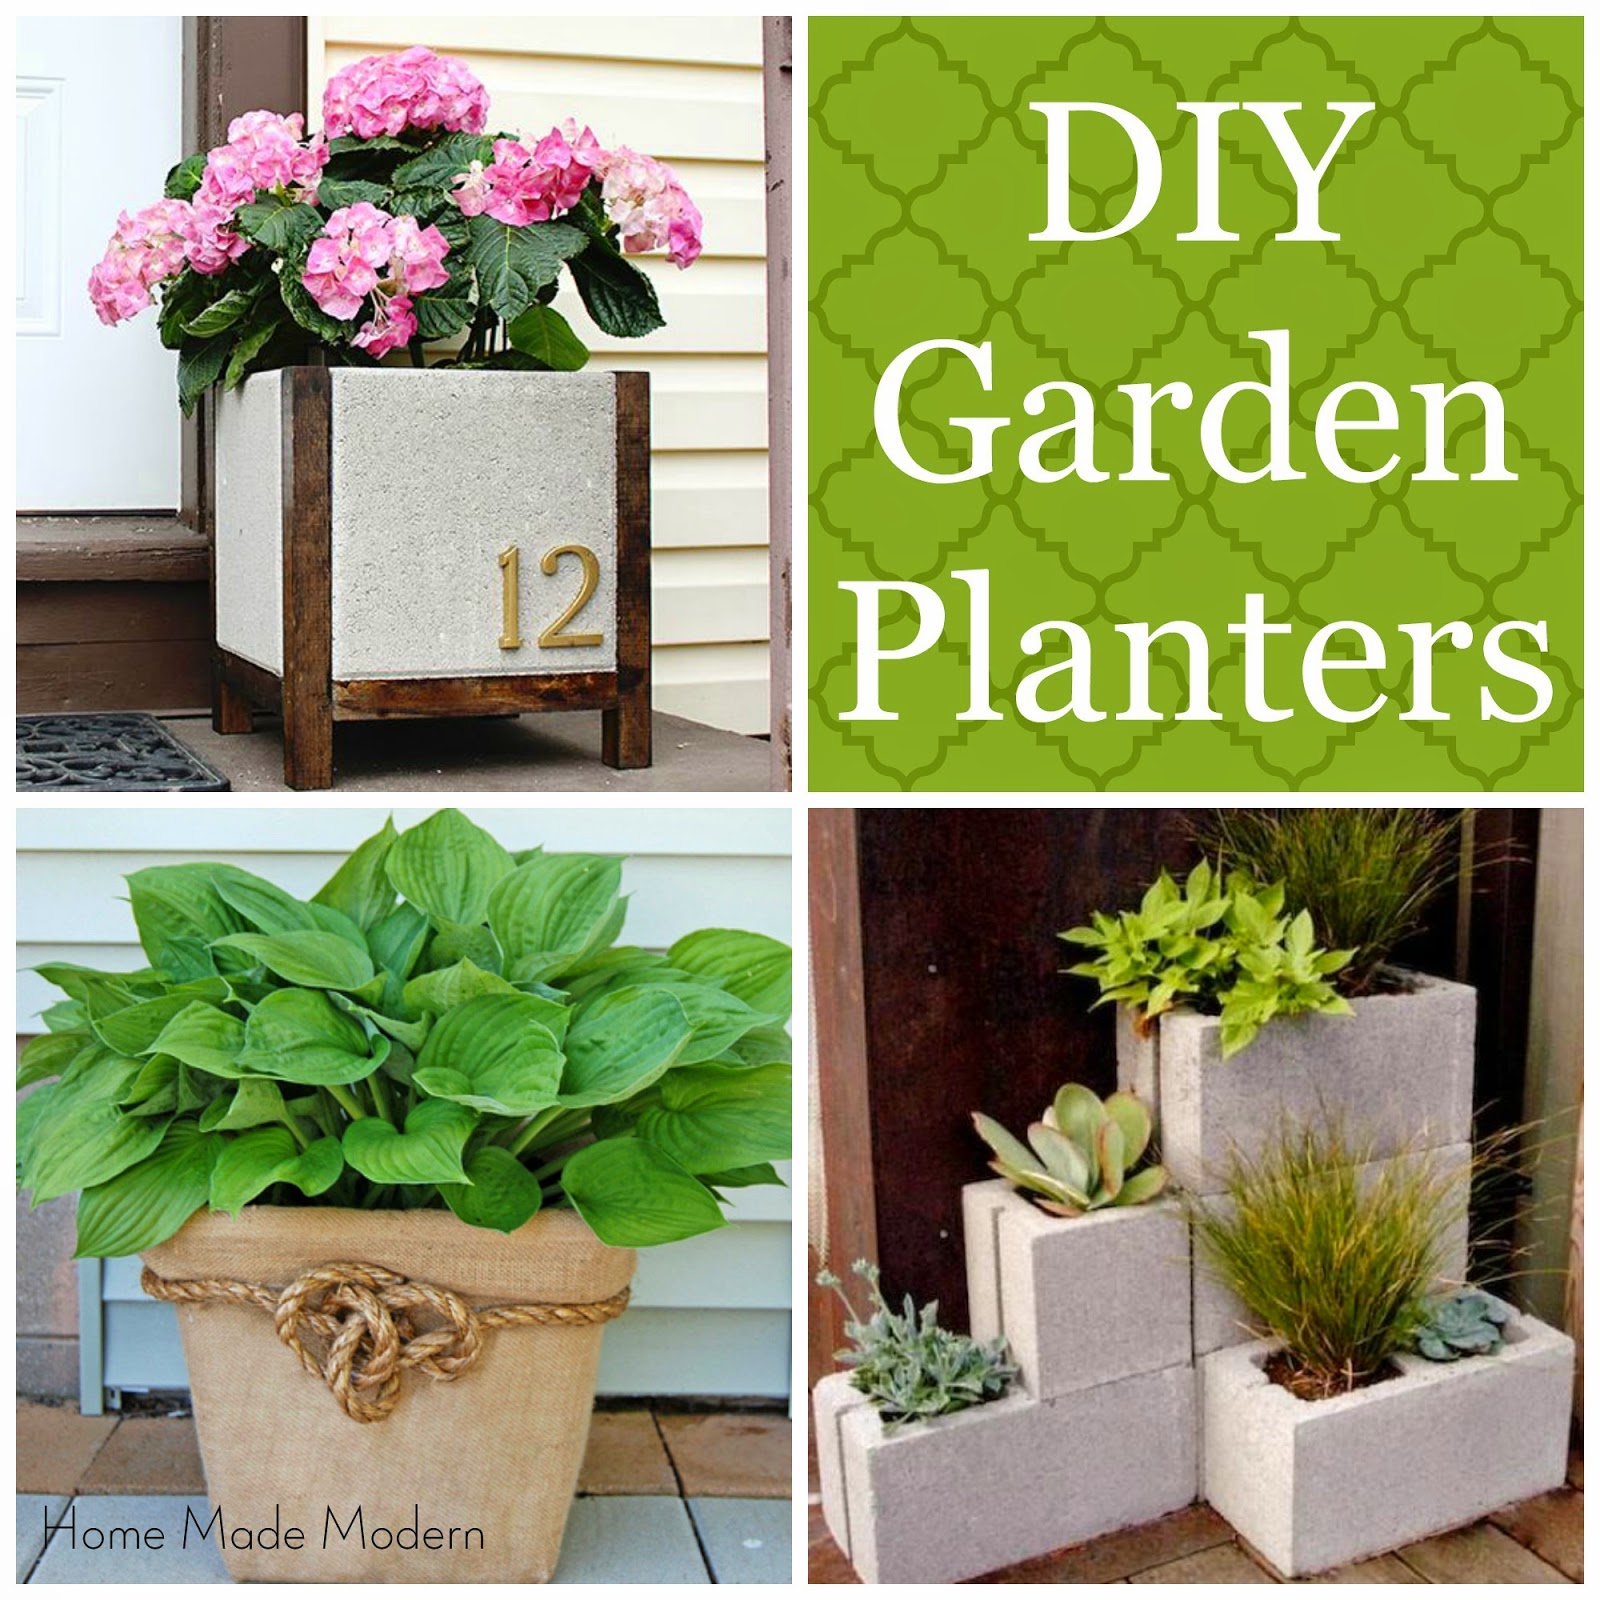 Home made modern unique garden planters you can make for Garden planters